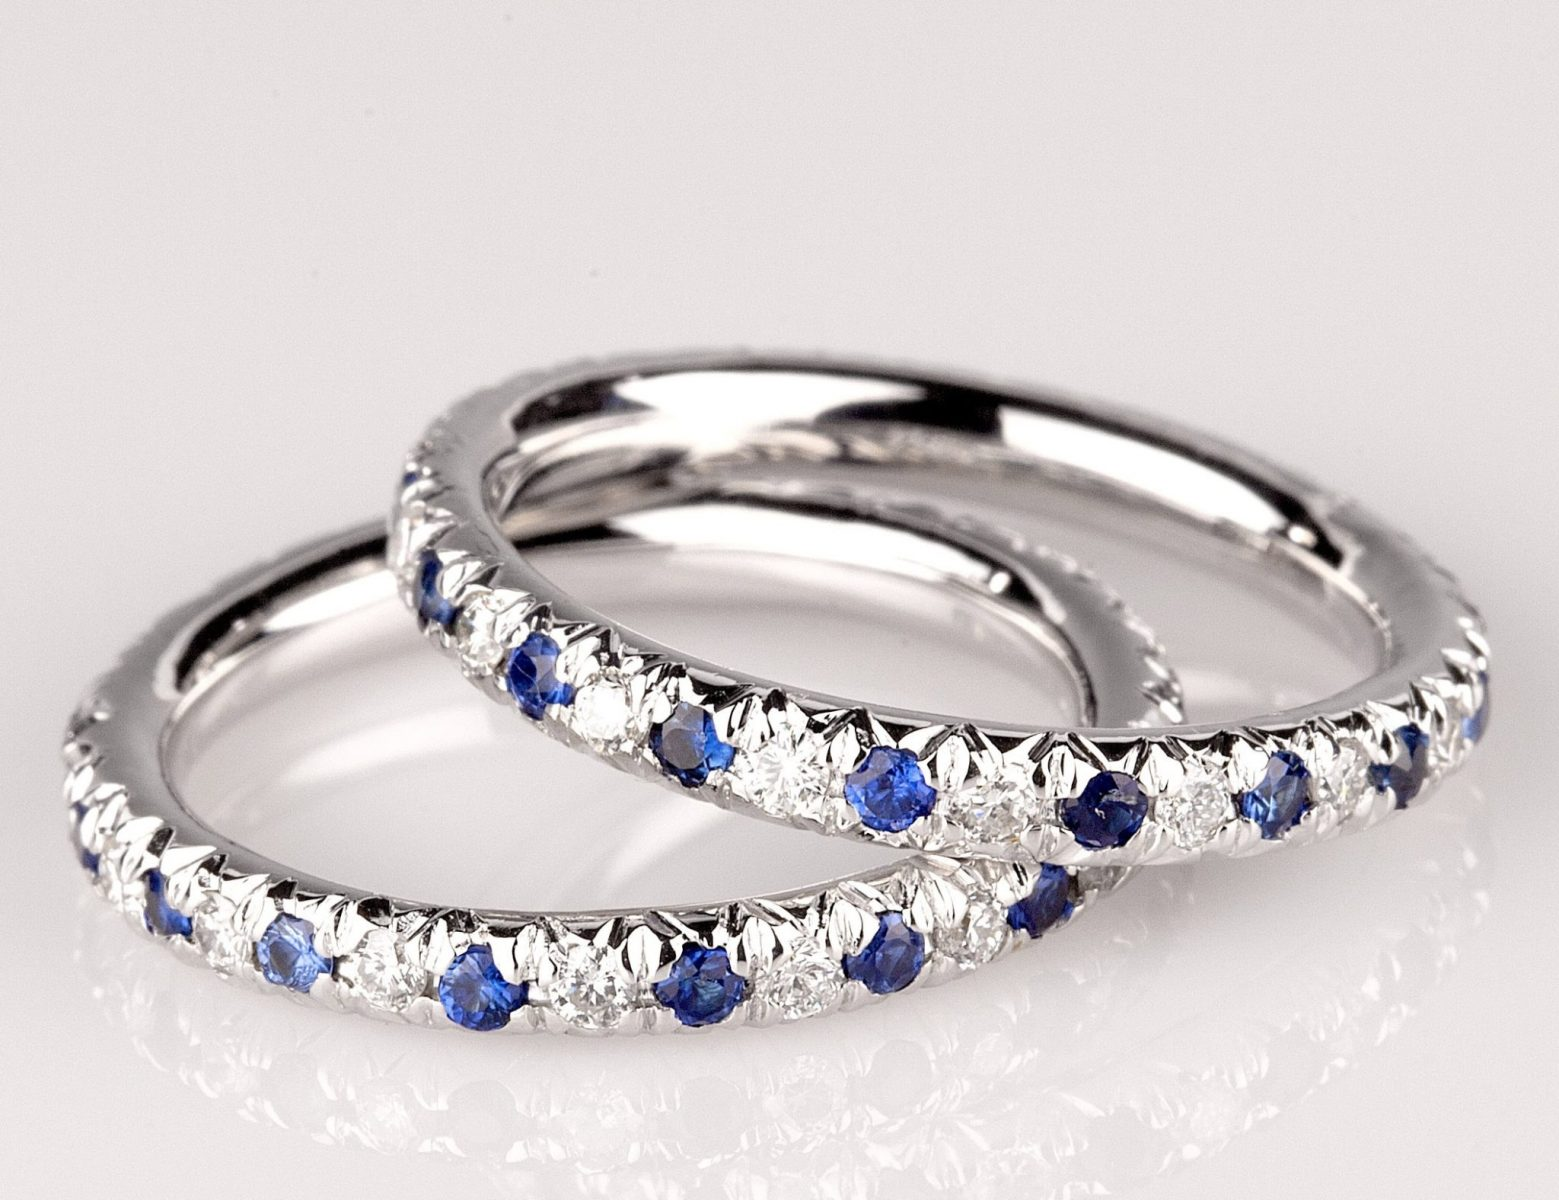 sapphire and bands sale amoro anniversary special white carat diamond band gold cut oval